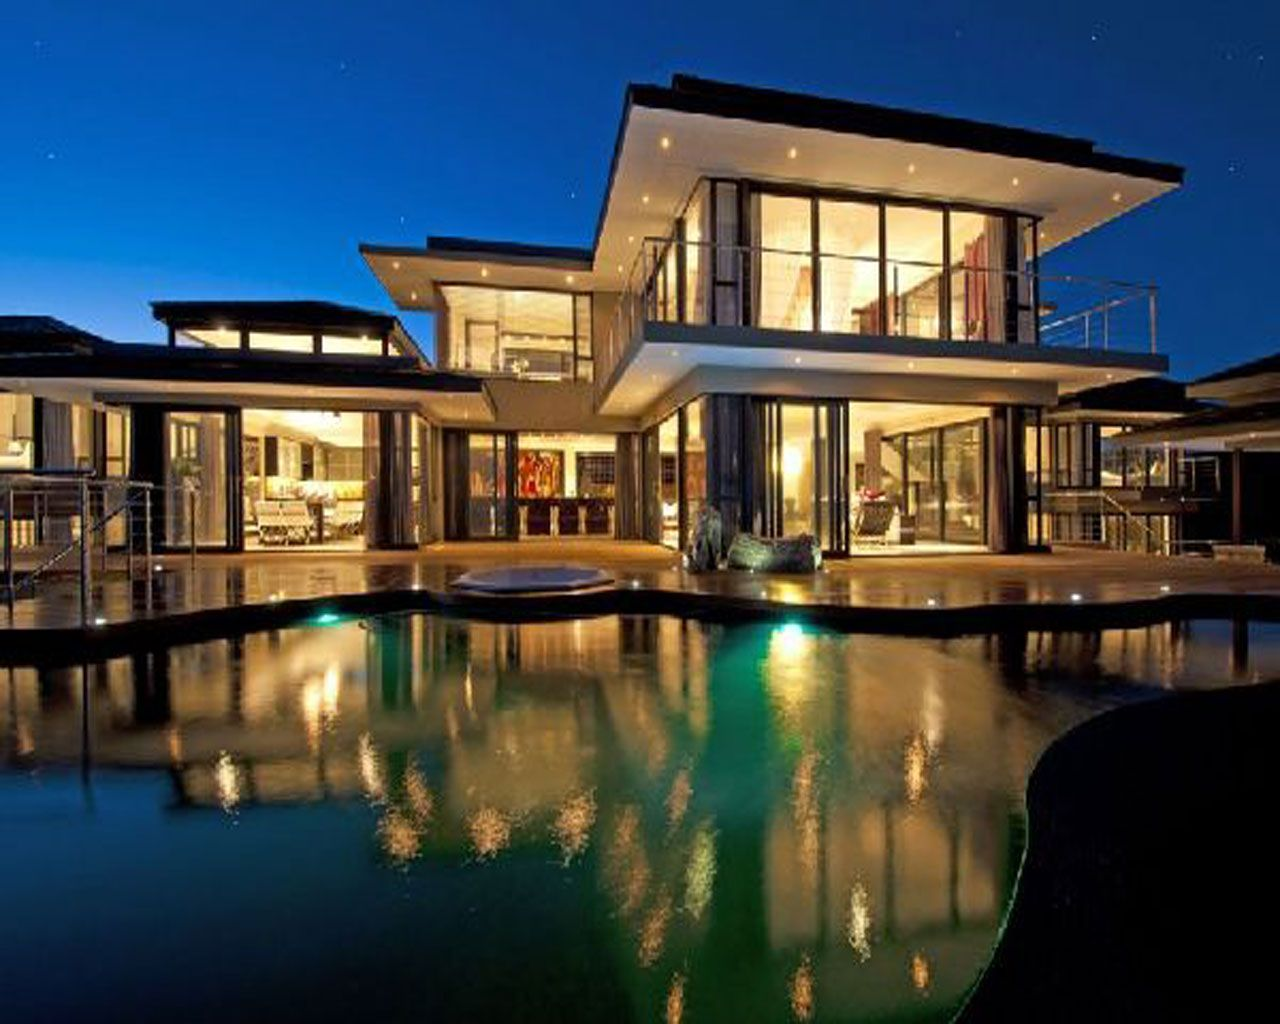 Beautiful modern mansions images for Ome images